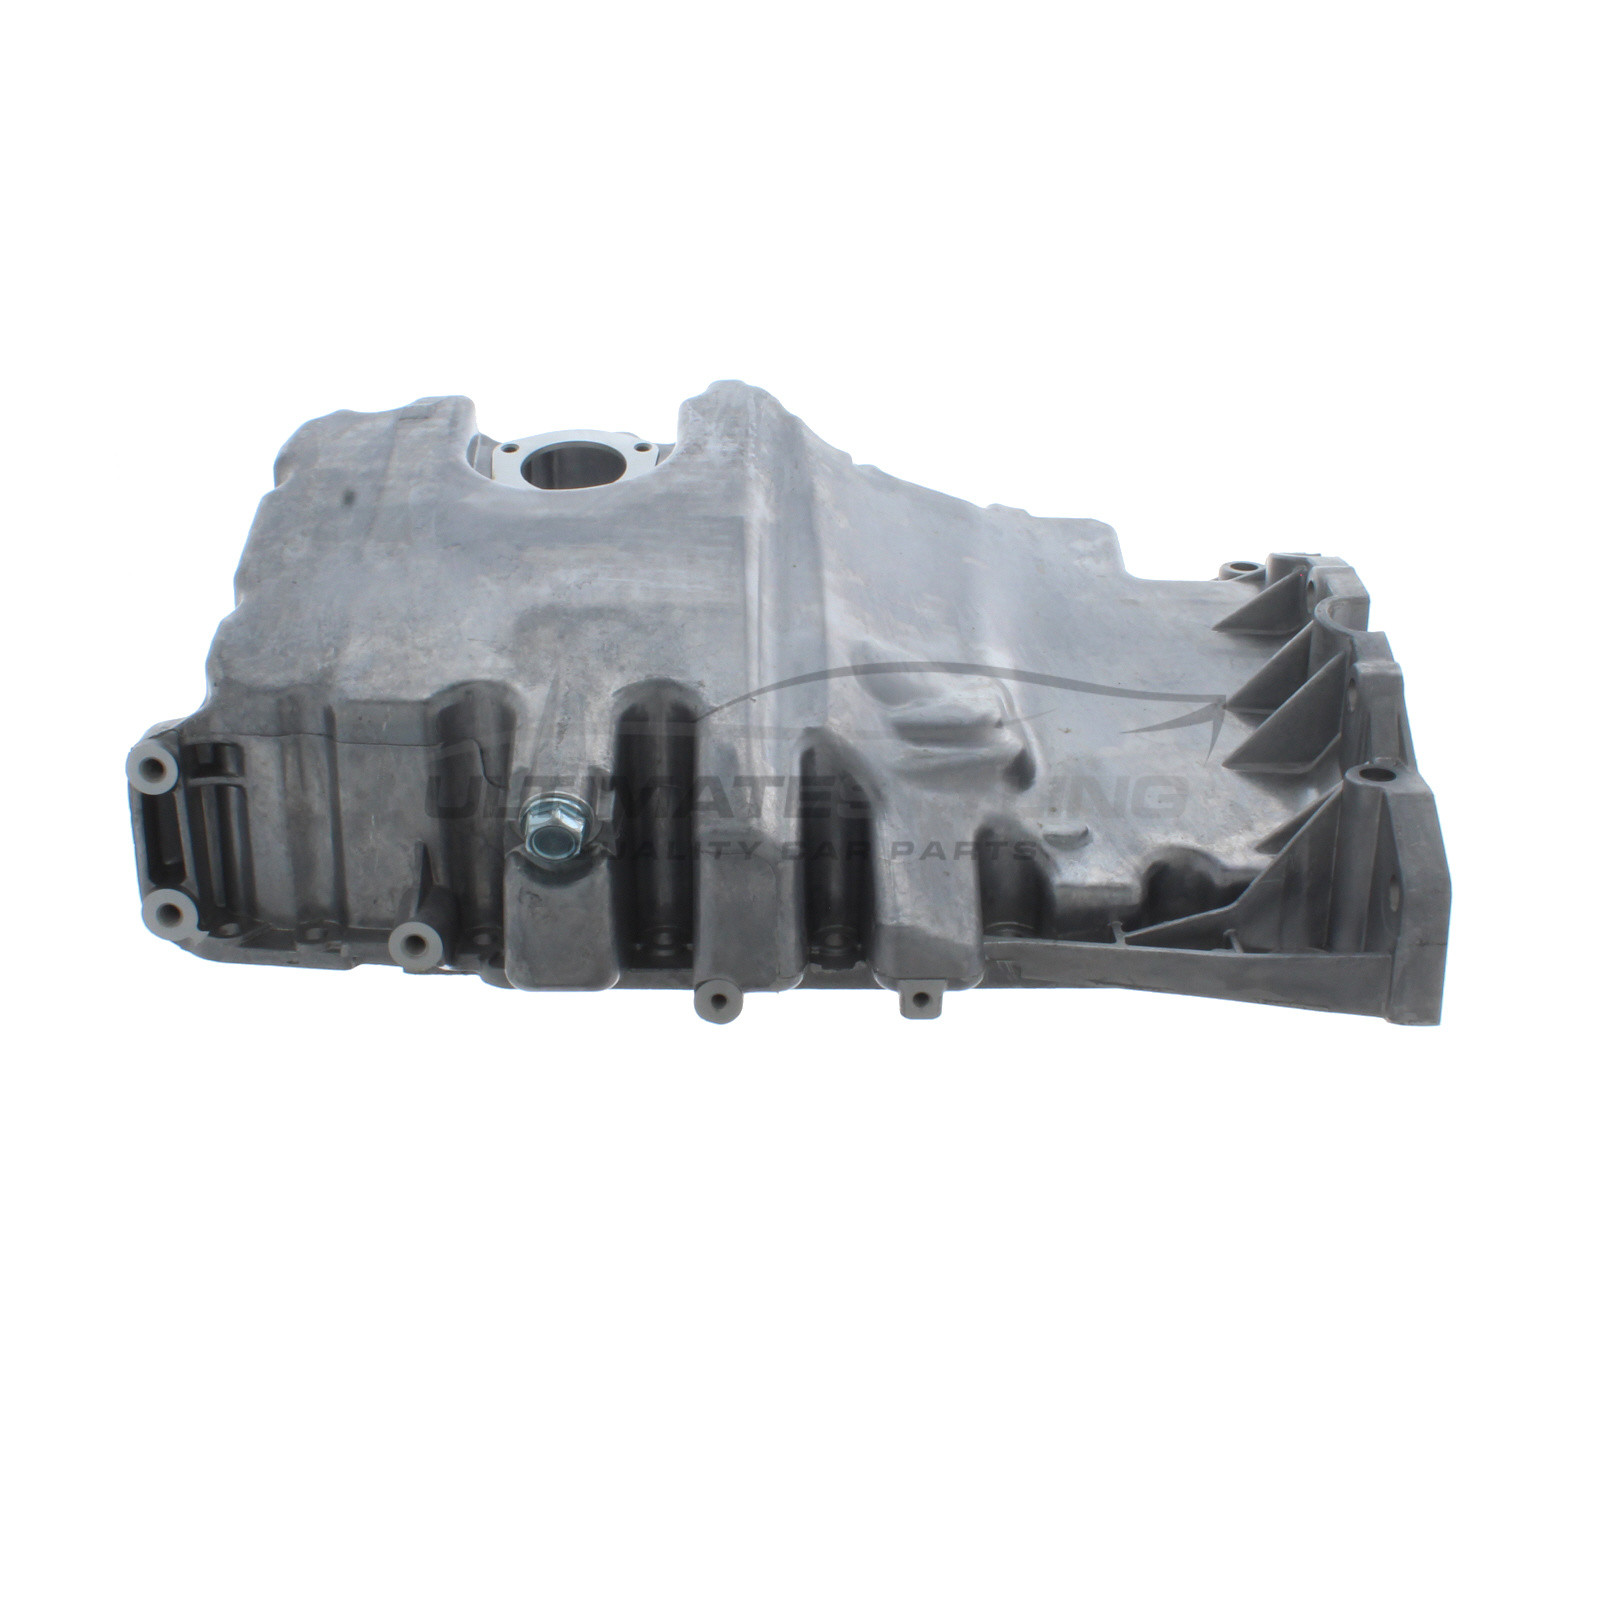 Oil Sump for Audi A4